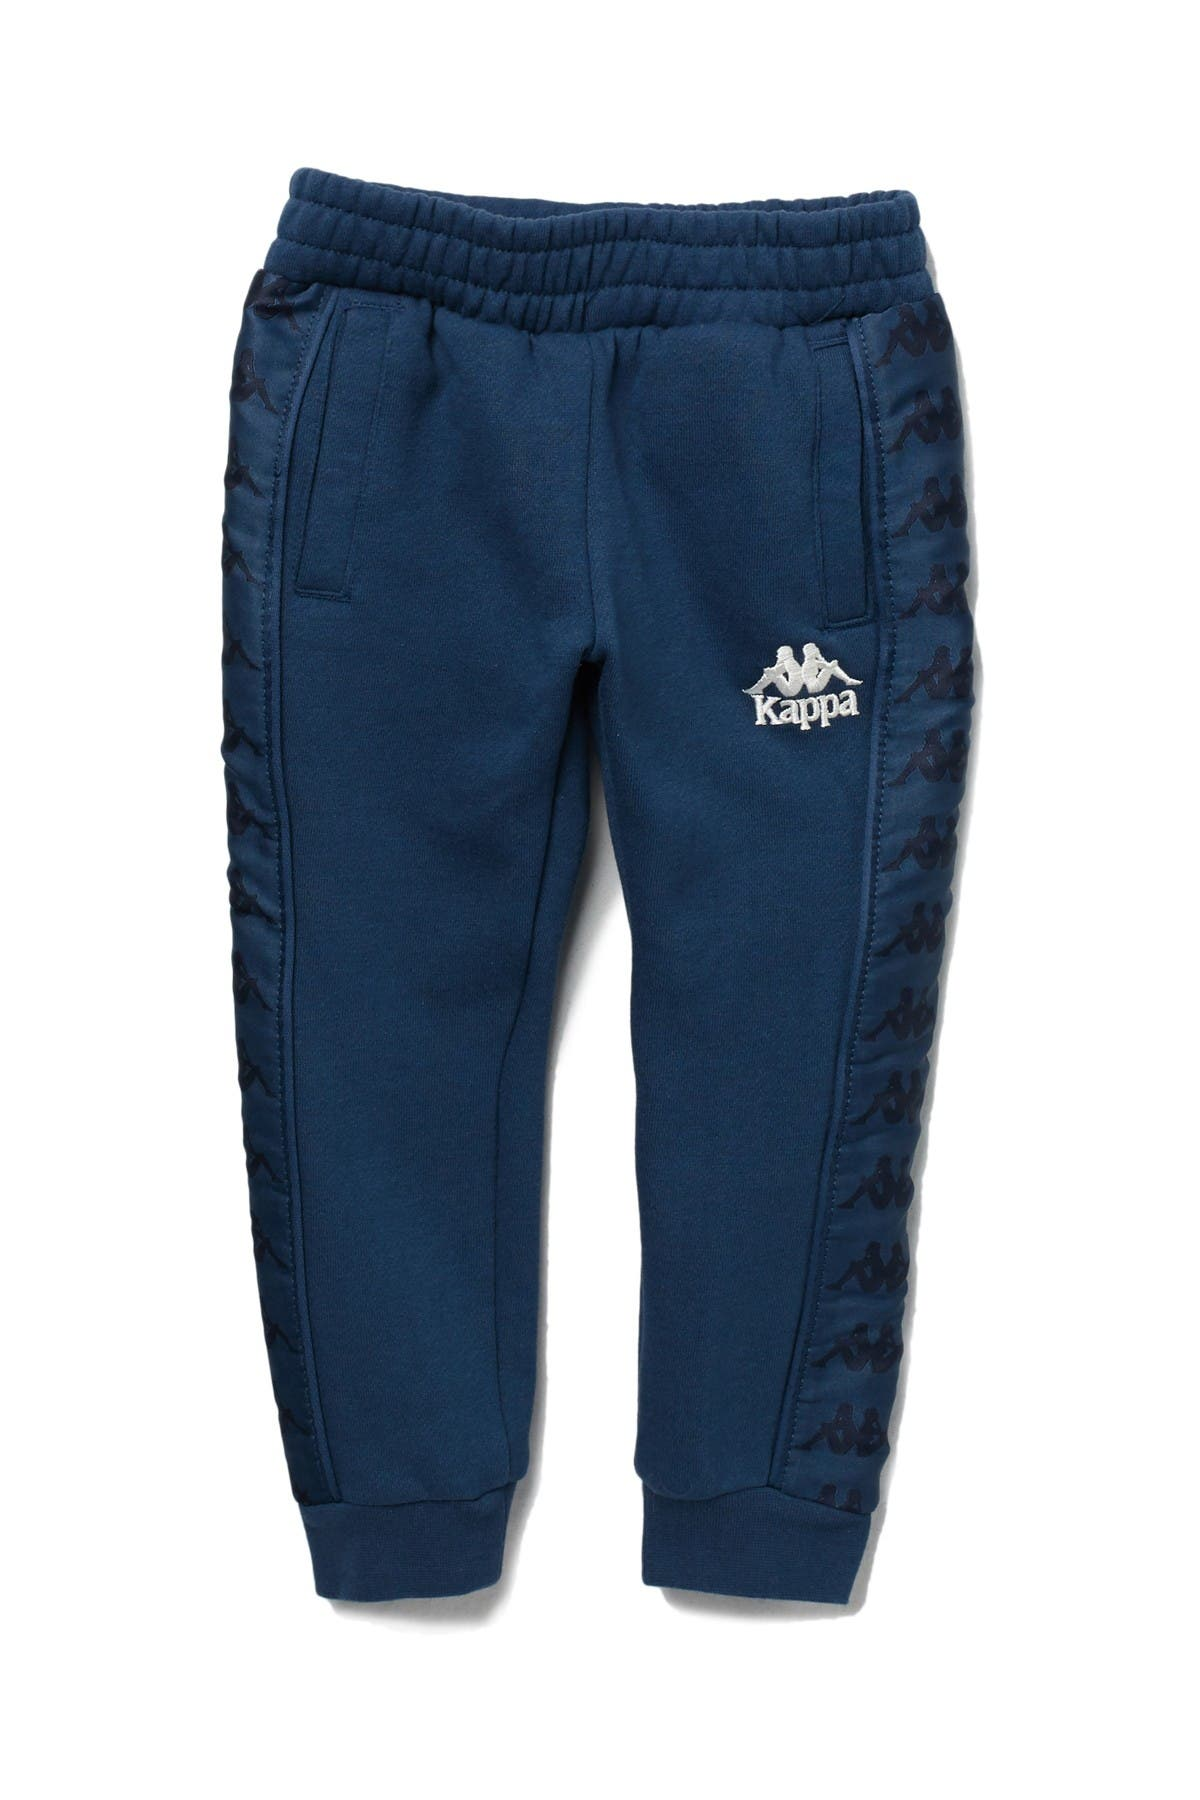 Image of Kappa Active 222 Banda Alanz Pants